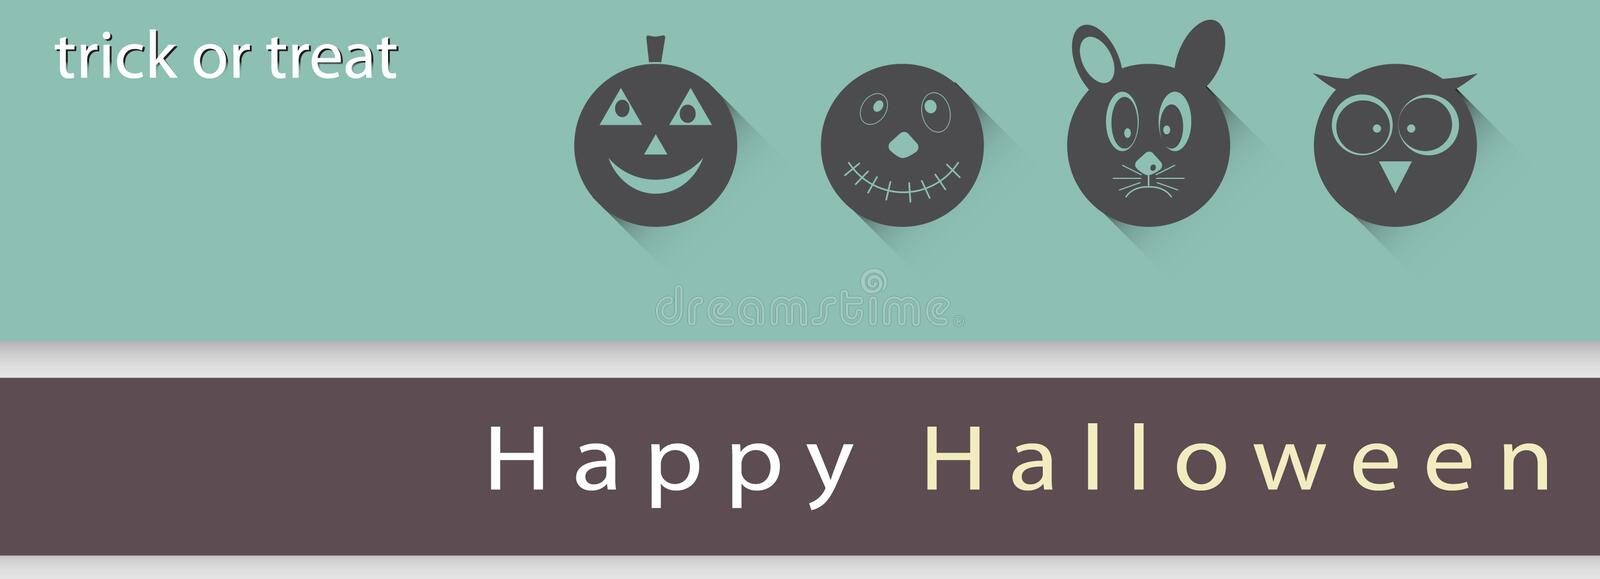 Poster, banner or background Halloween Party Night. royalty free stock photos